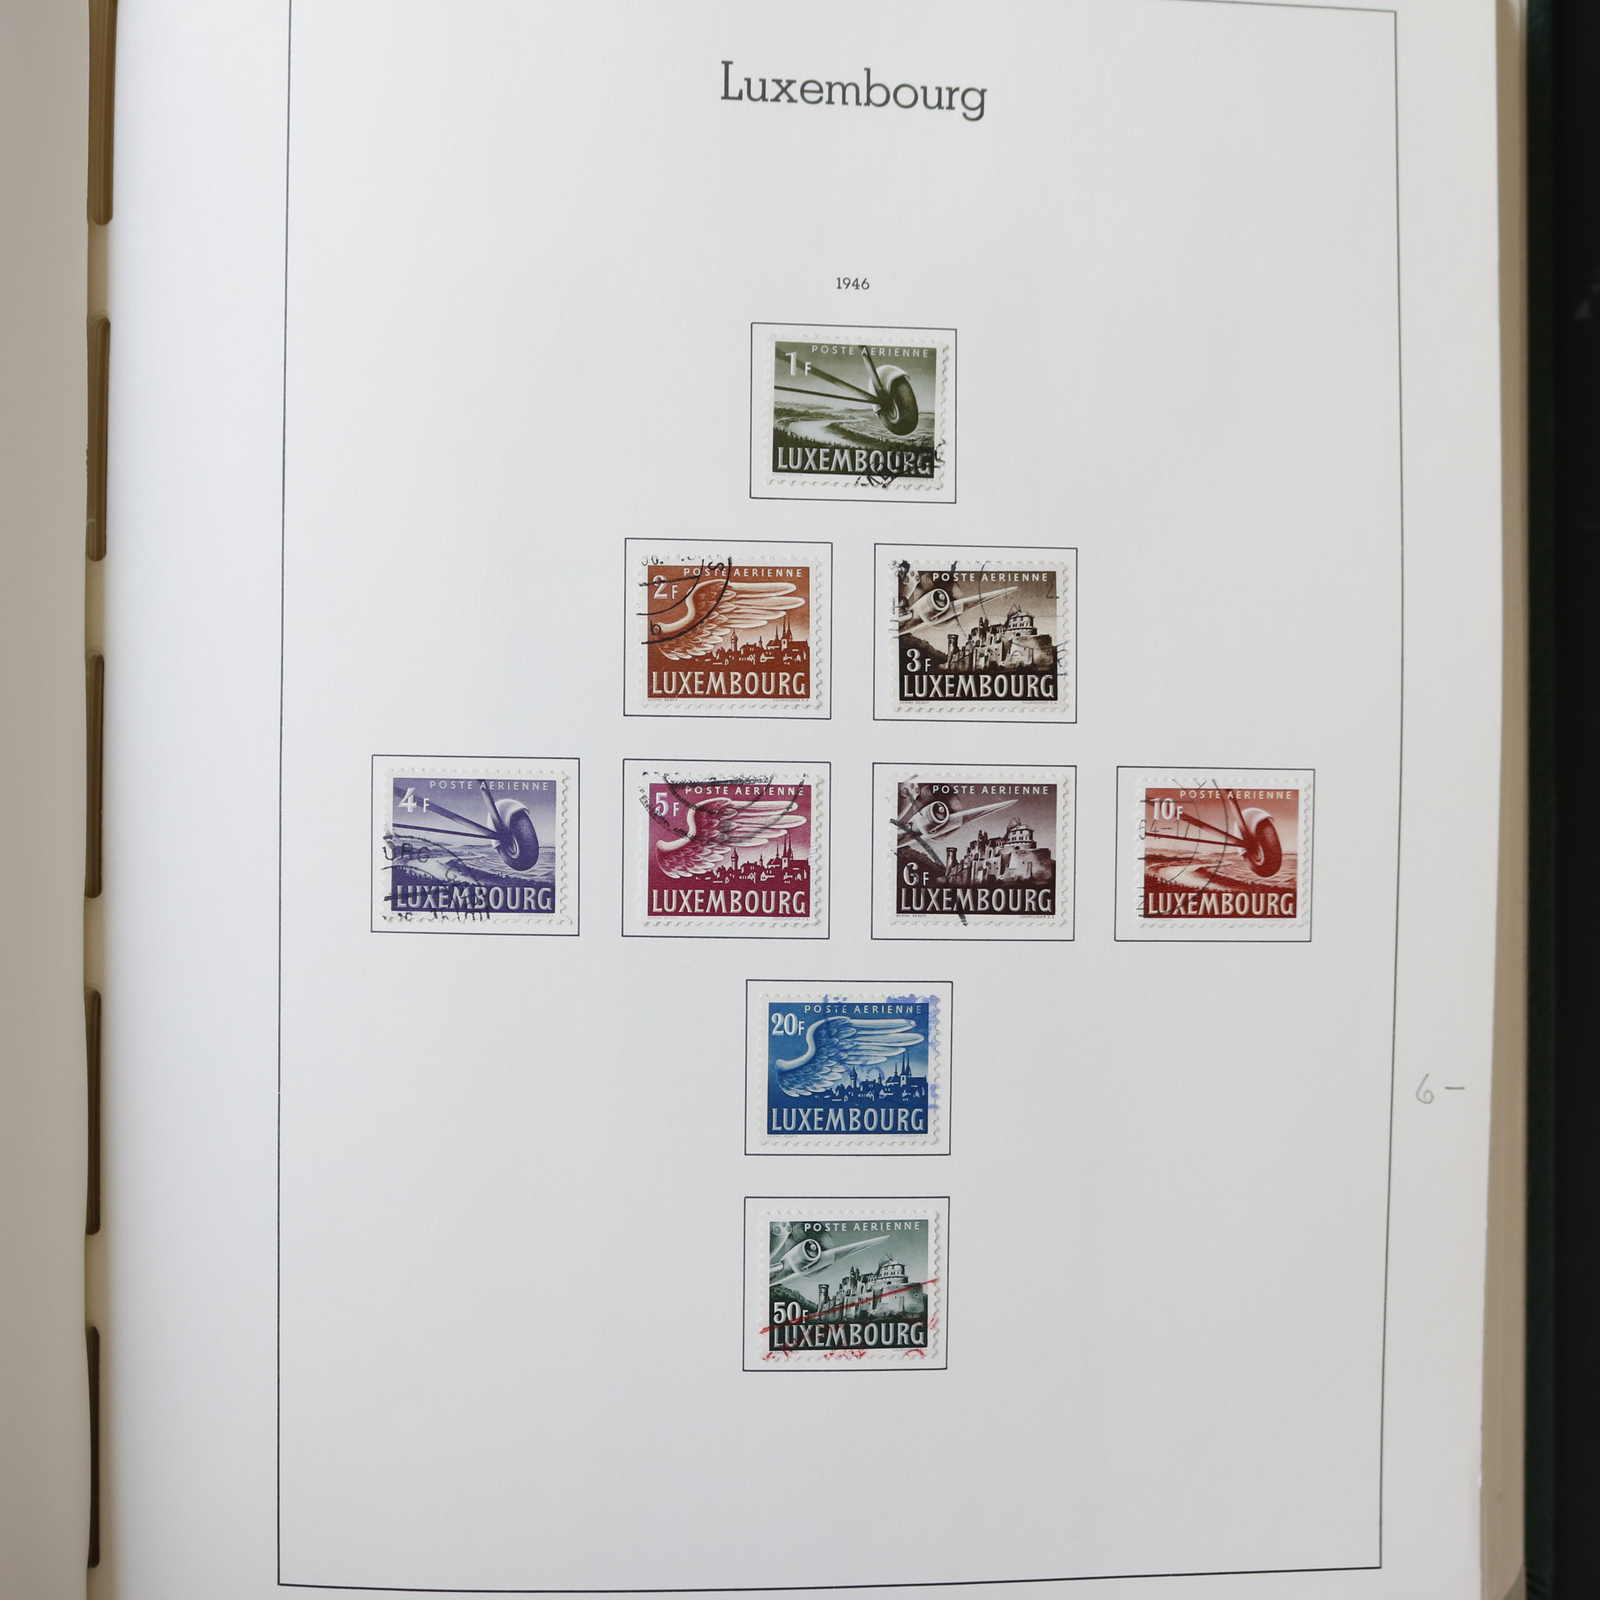 Lot 2448 - COLLECTIONS & ACCUMULATIONS Luxembourg -  Auktionshaus Schlegel 26 Public Auction